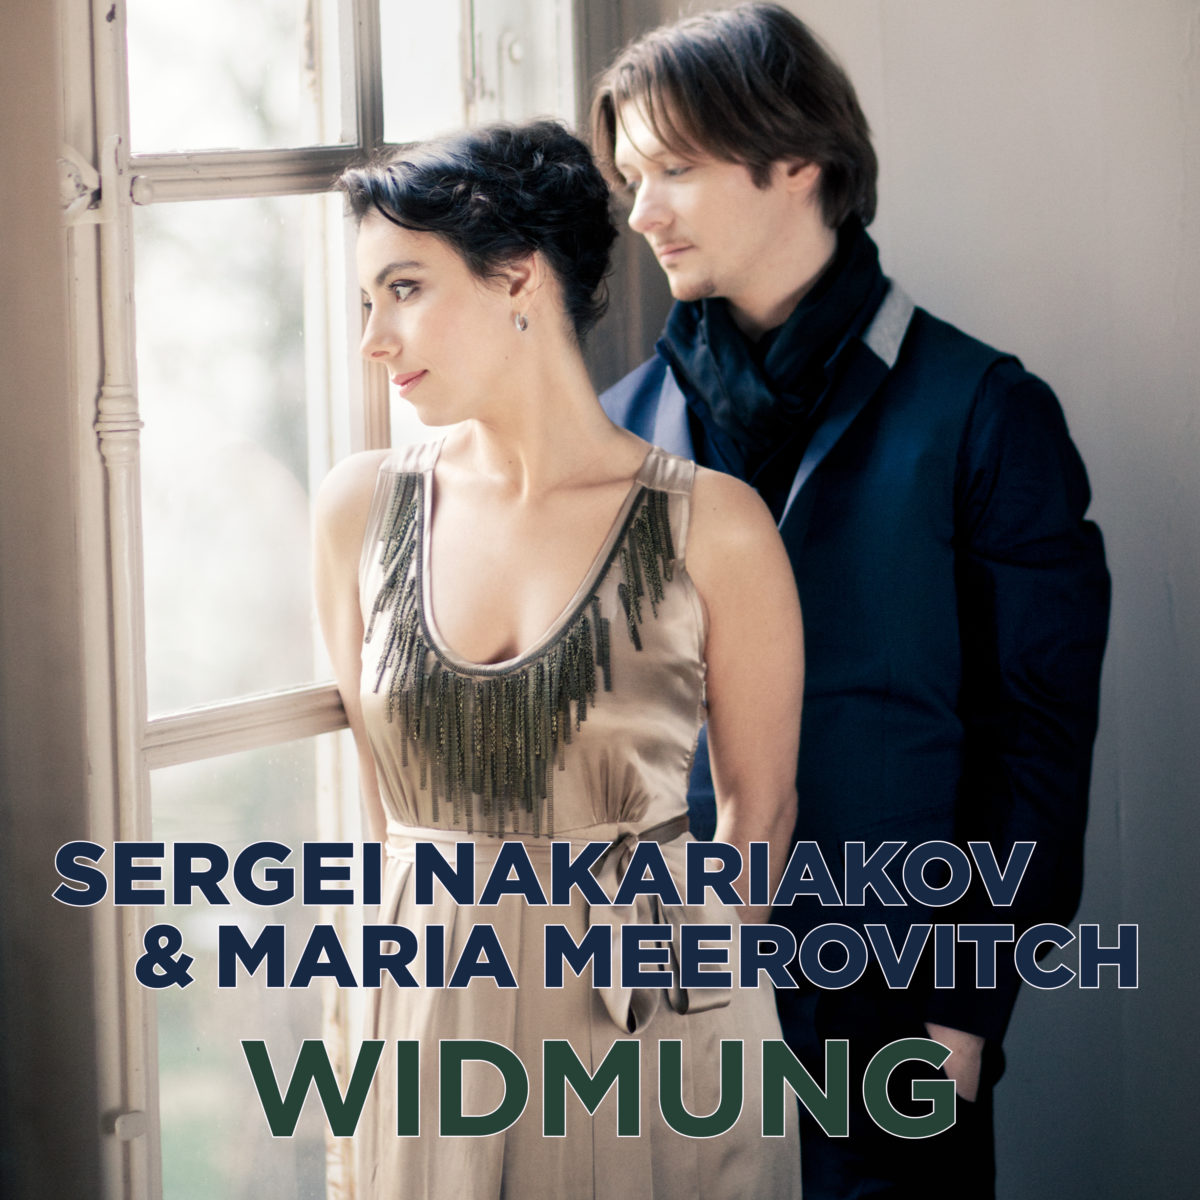 The album cover of Widmung by Sergei Nakariakov